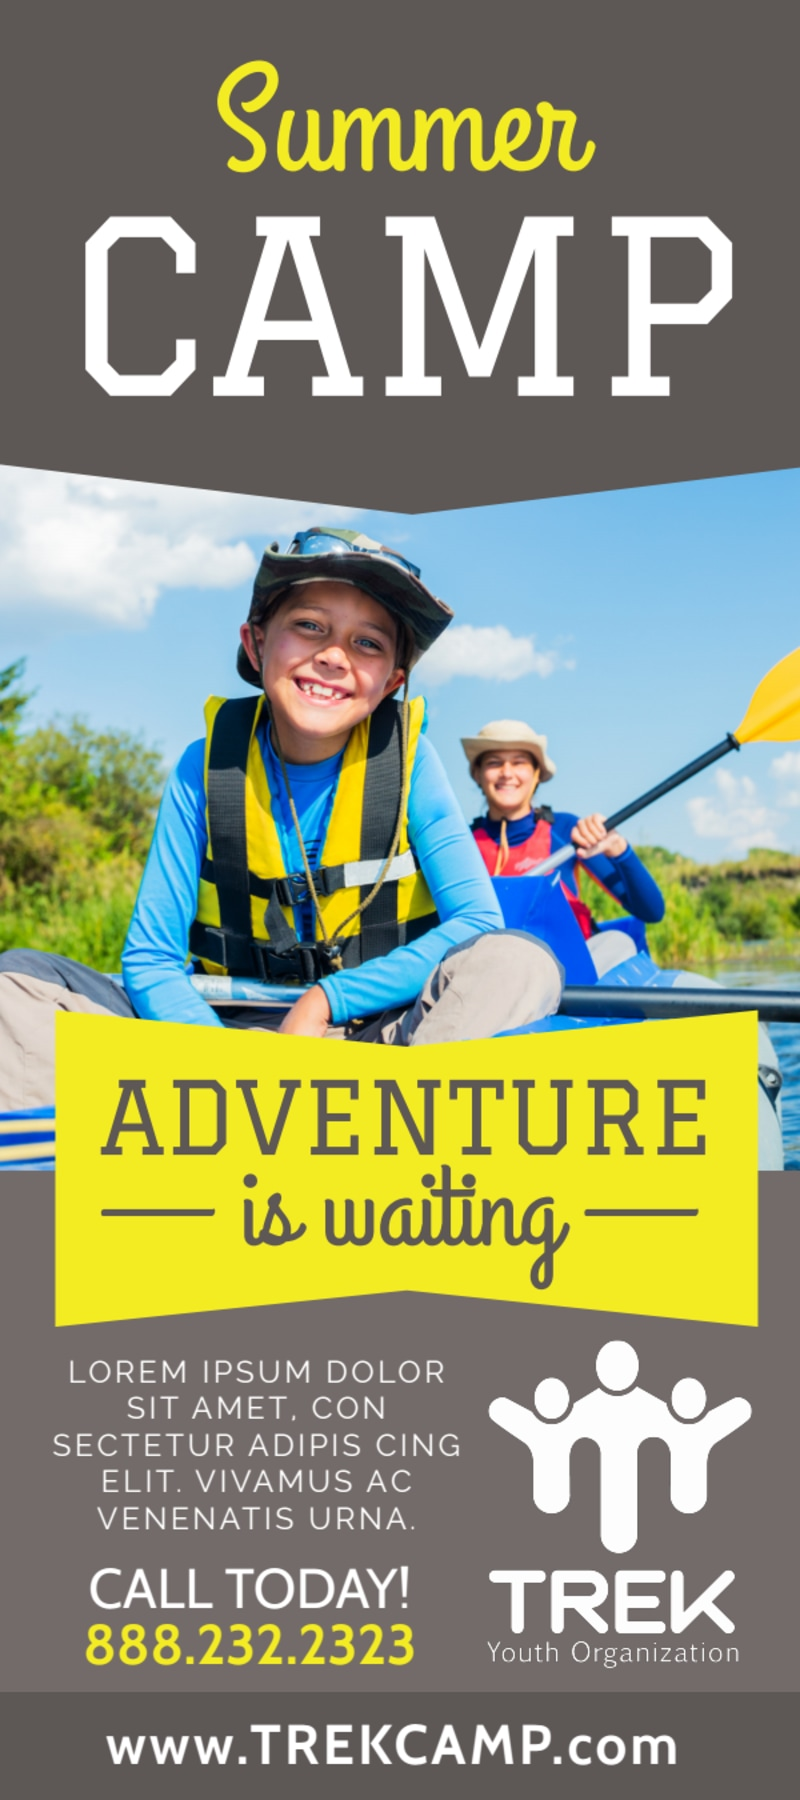 Adventure Camp Flyer Template Preview 2